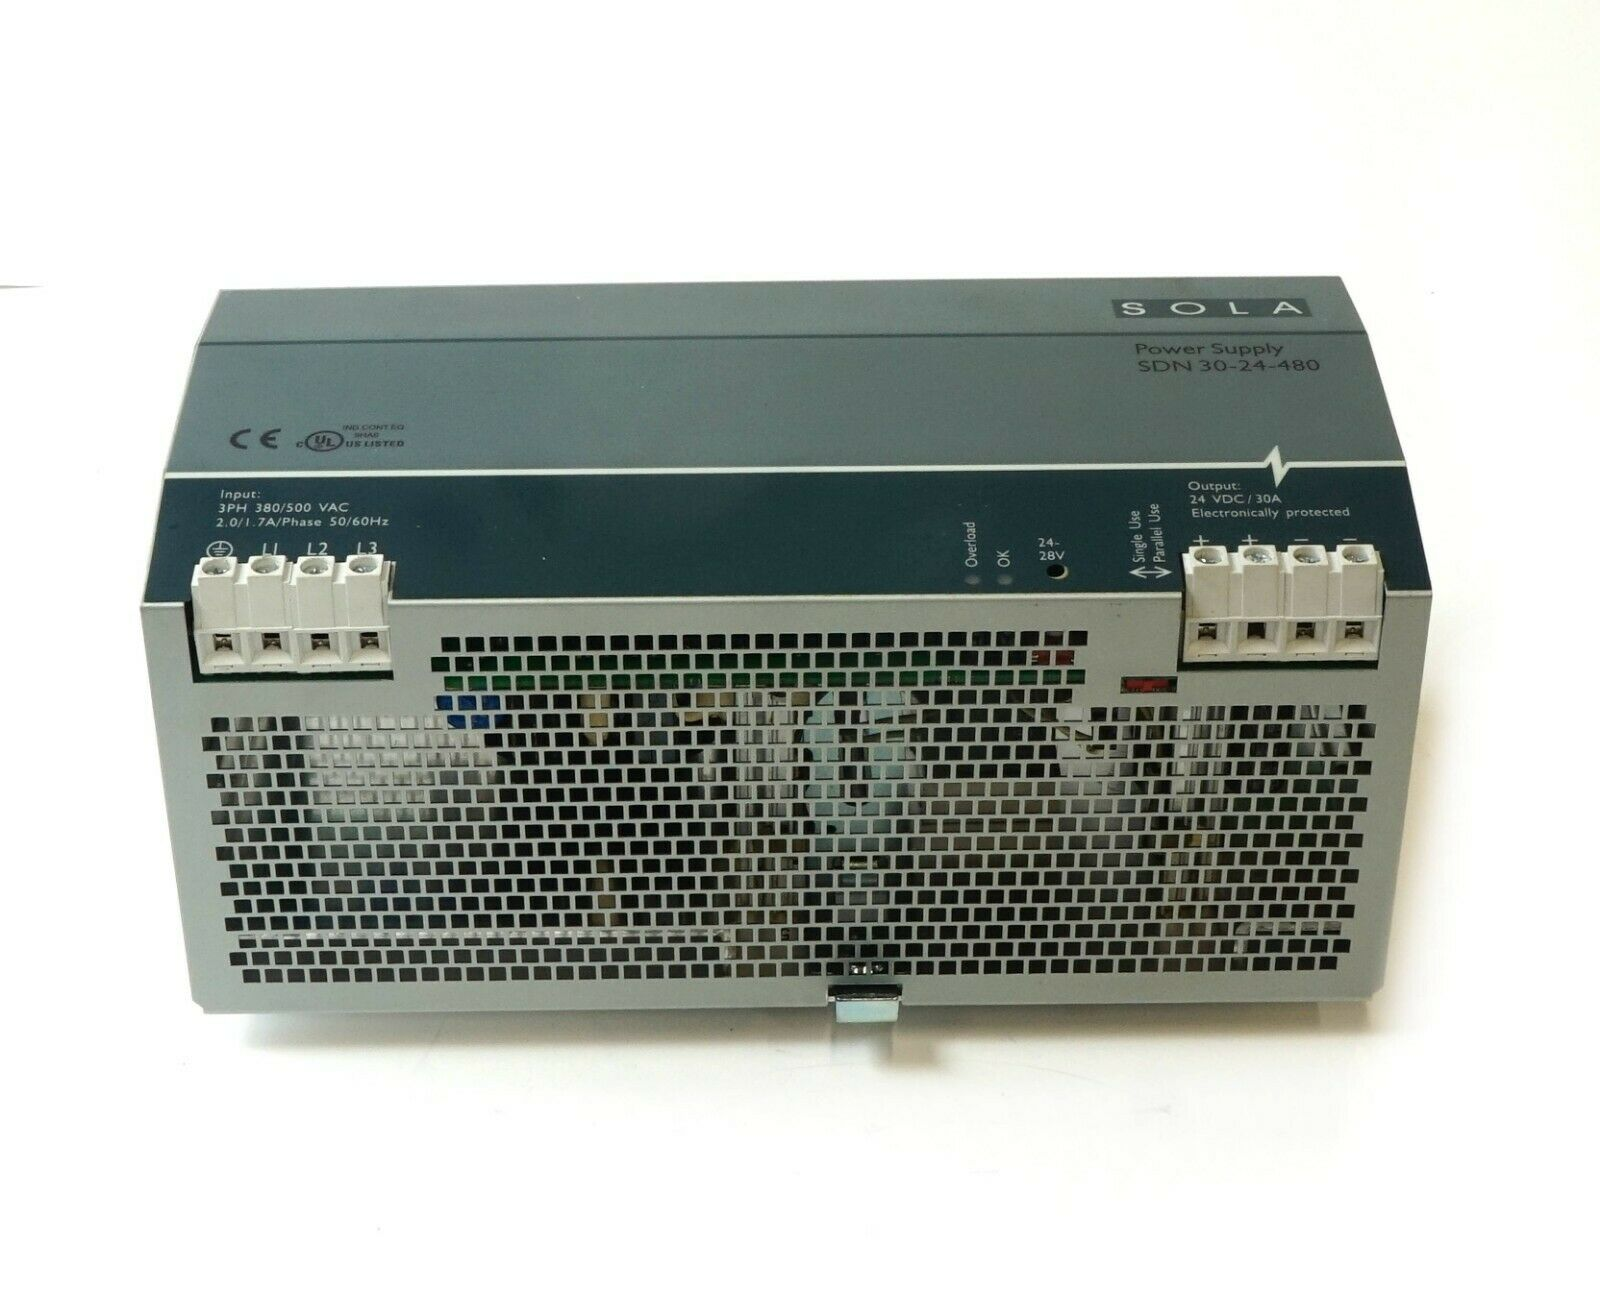 SOLA SDN Power Supply